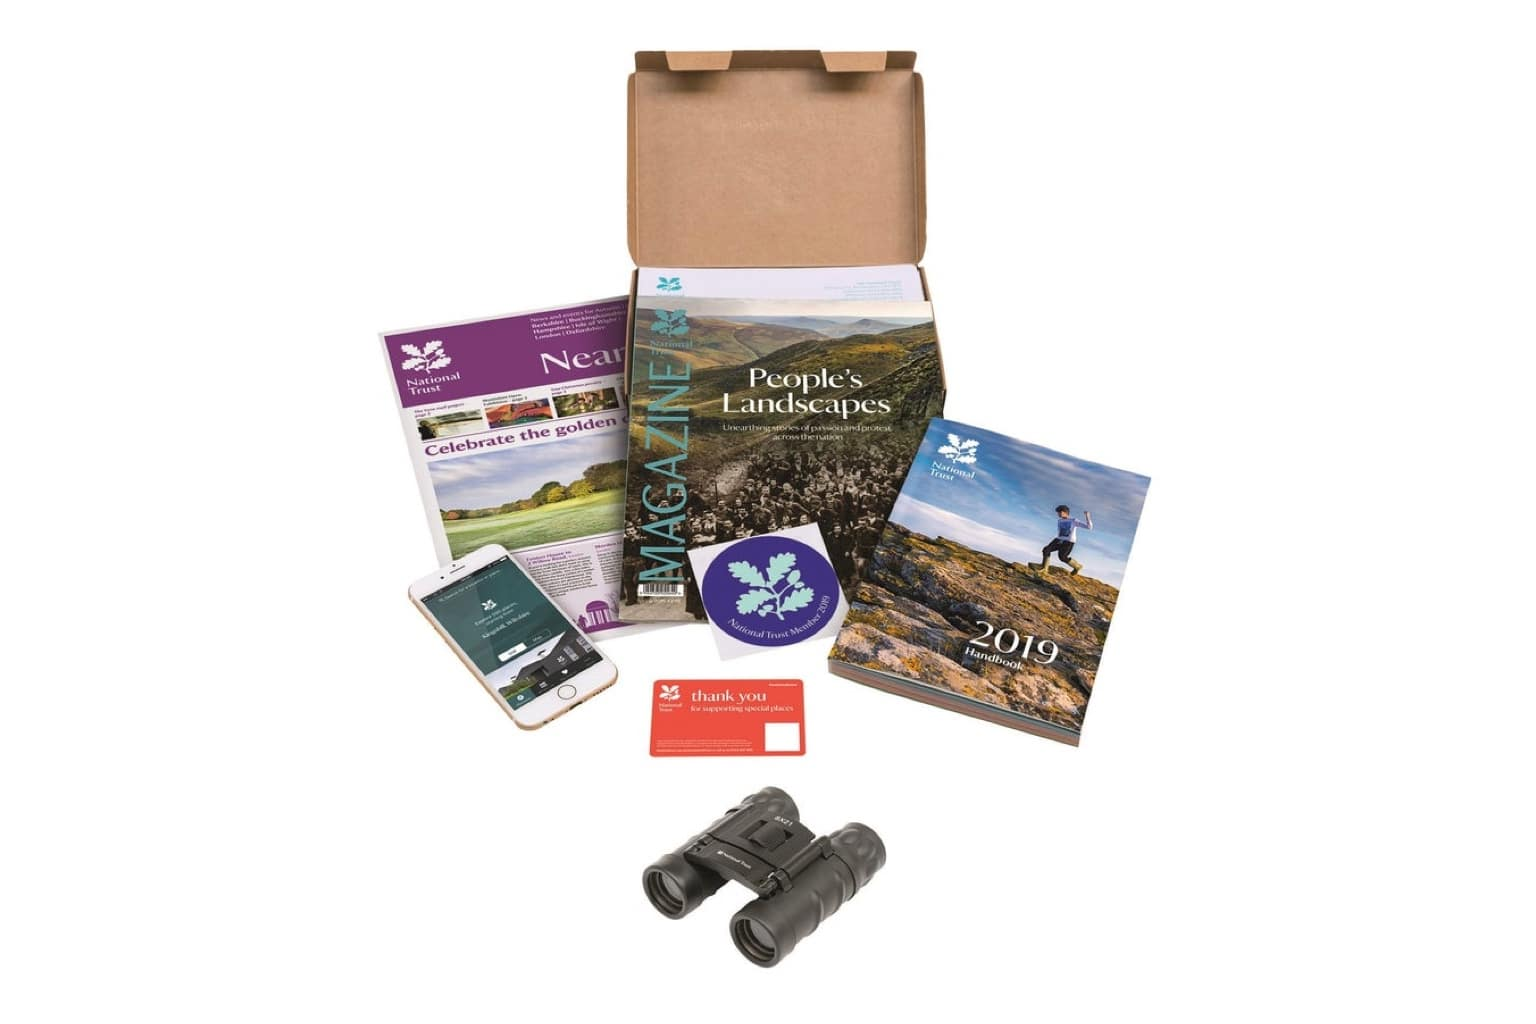 Charity Gifts from The National Trust